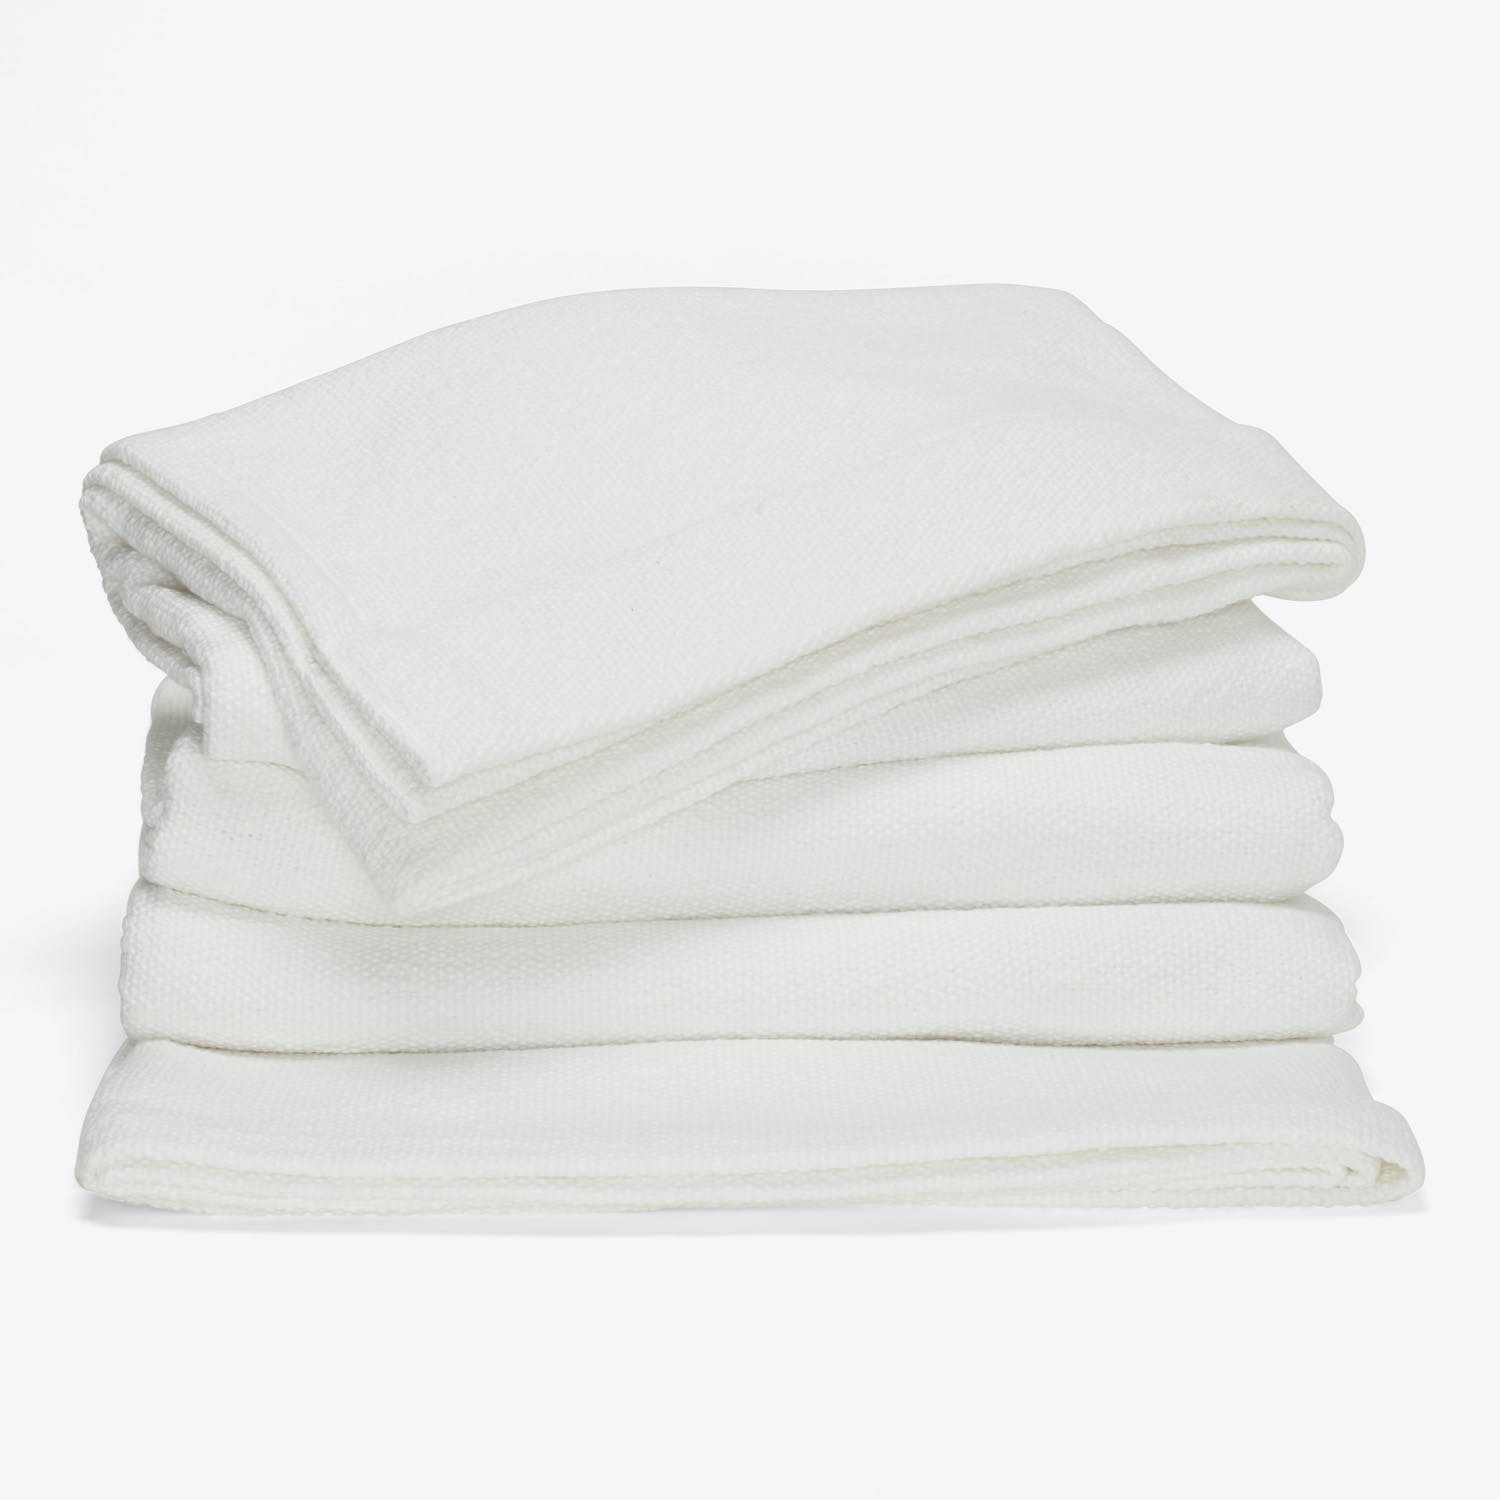 Product Image - Sefte Mila Woven Cotton Blankets White